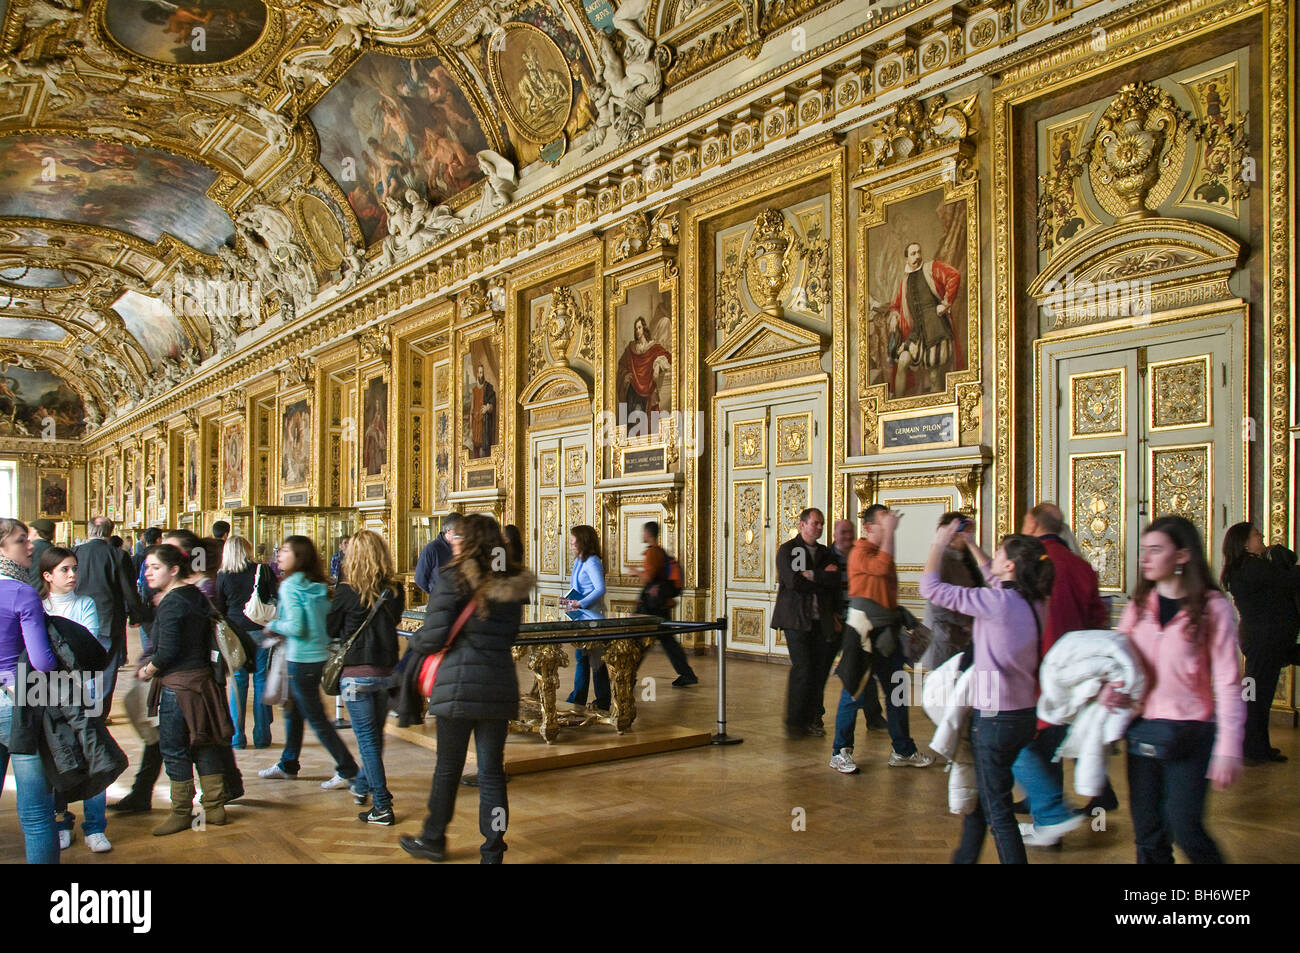 Gallery Apollon Louvre Museum Paris France - Stock Image